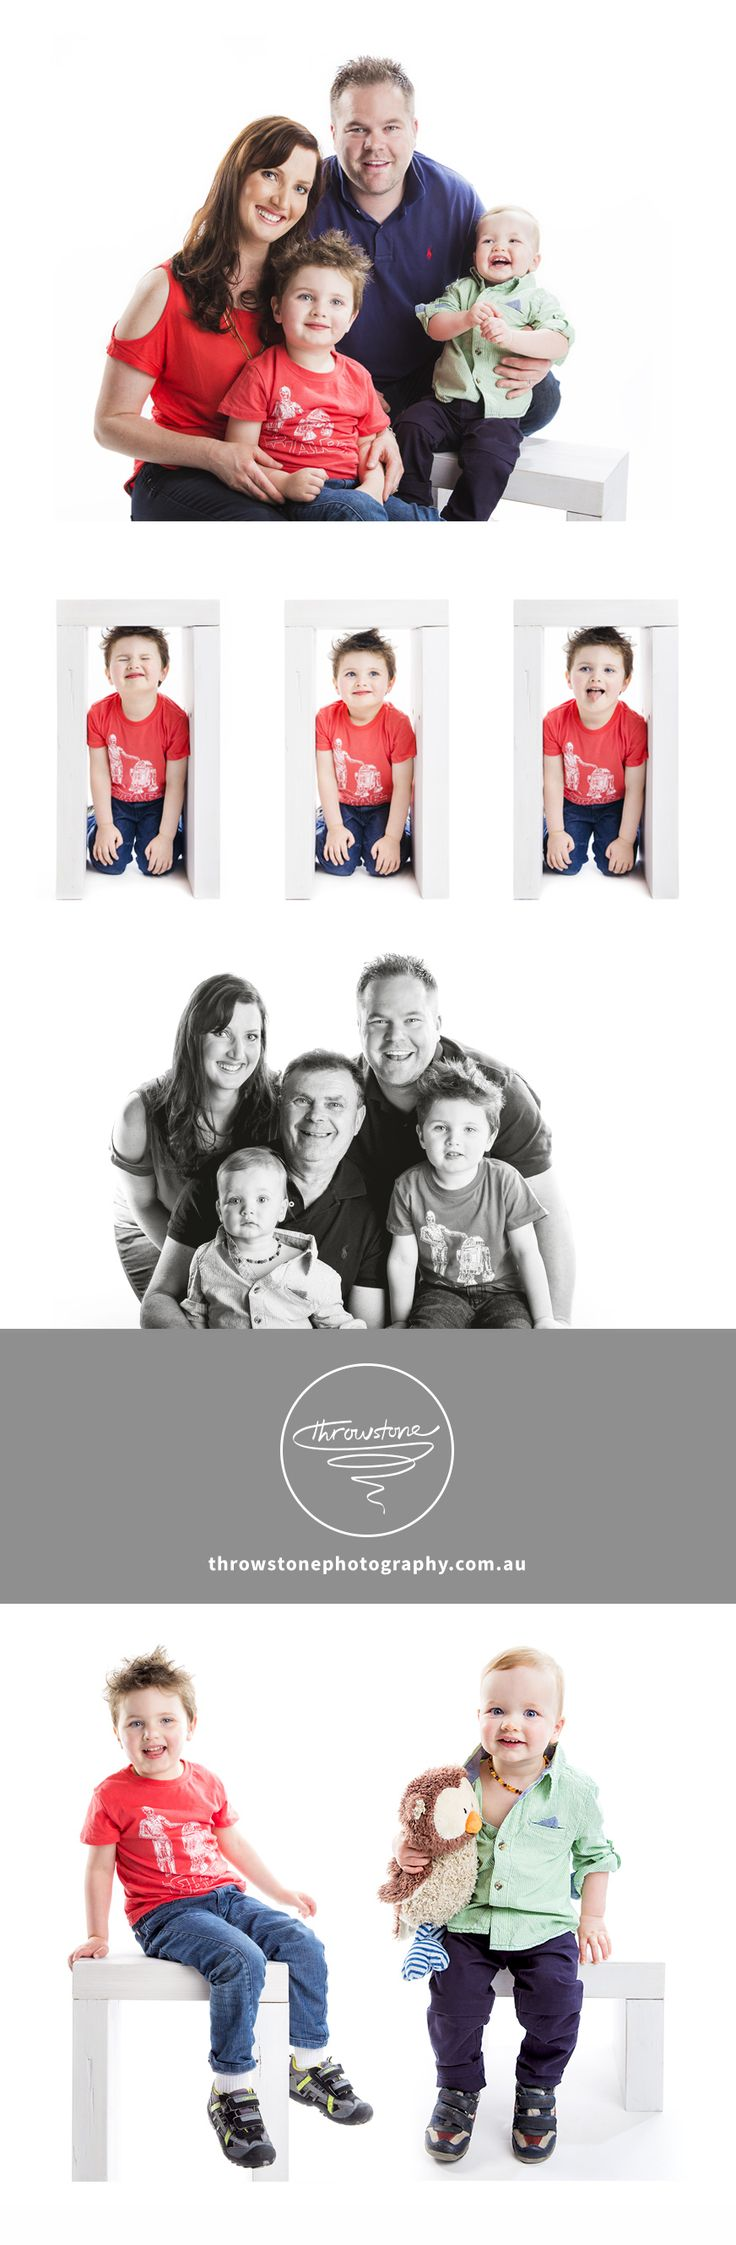 Here is the Fados Family! There wasn't a moment of stillness during our session but that's where the fun is! It was great to meet your family Chris and Leah, and I'm sure you'll enjoy viewing all the action shots we took!